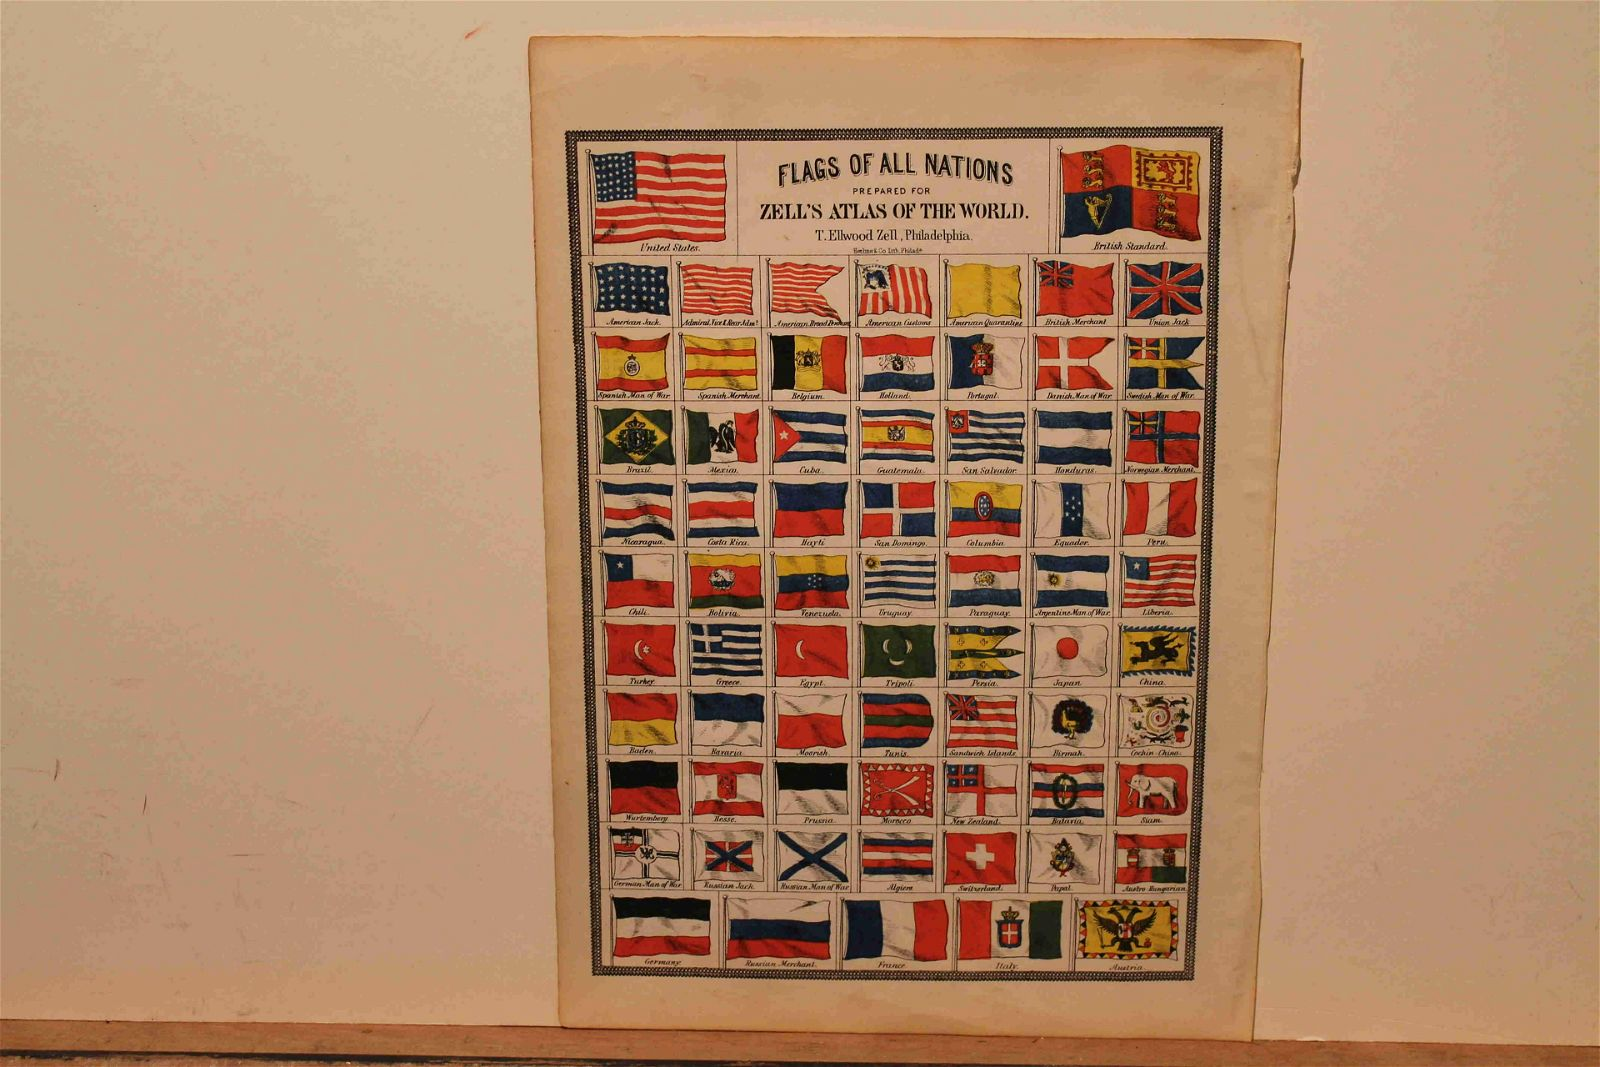 1873 Flags of Nations